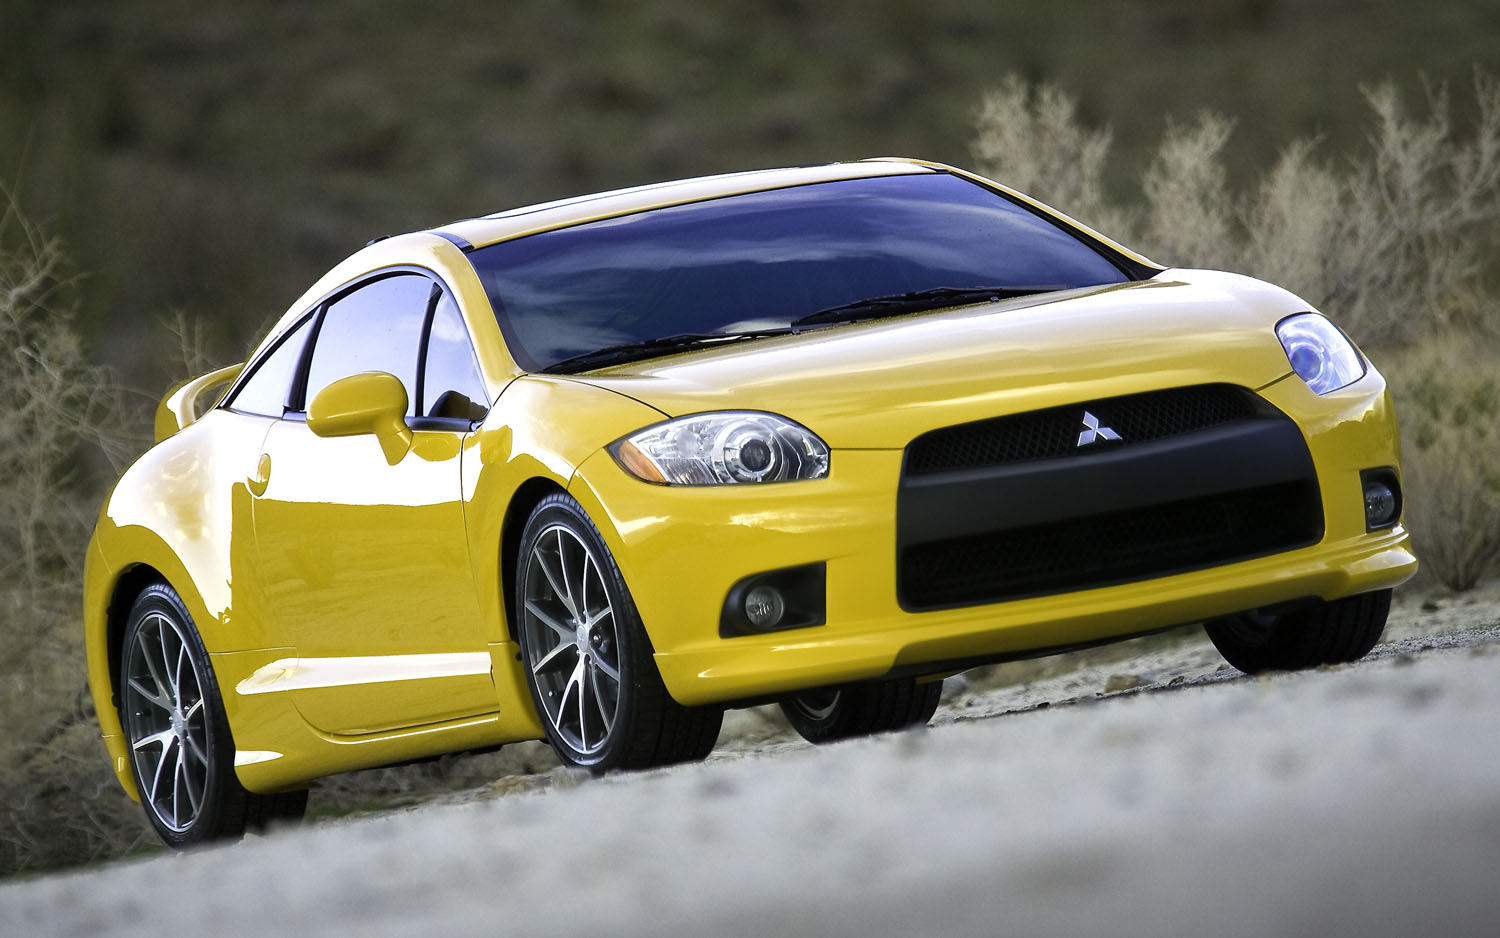 http://st.automobilemag.com/uploads/sites/11/2011/09/2010-Mitsubishi-Eclipse-GT-front-three-quarter.jpg